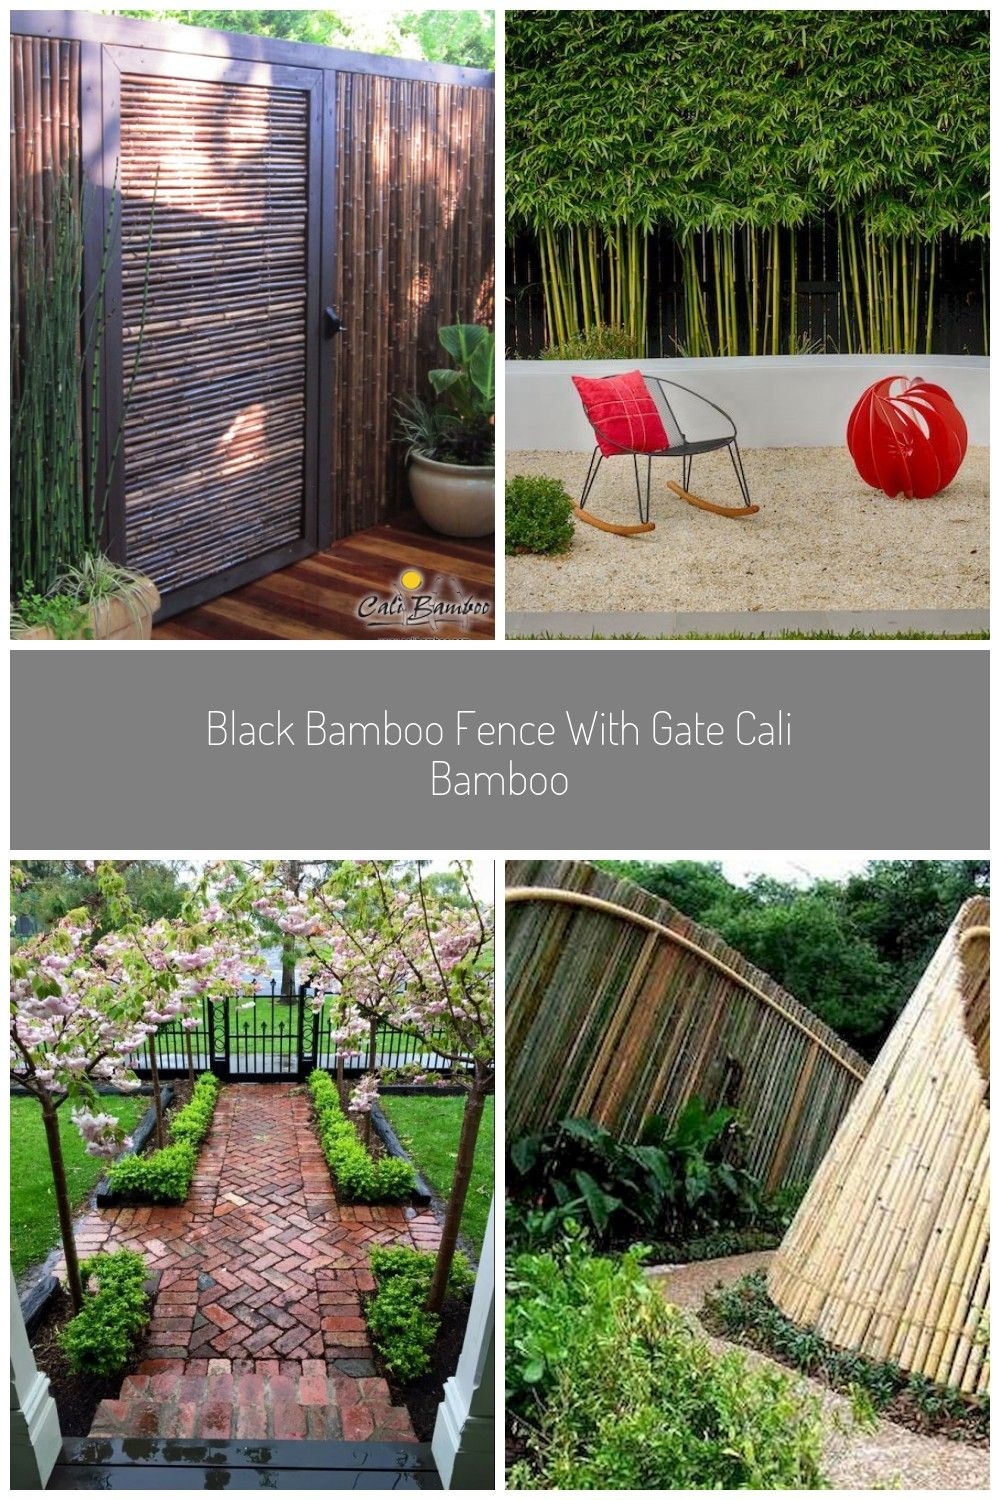 bamboo fence with Gate  Cali Bamboo fence Black bamboo fence with Gate Cali Bamboo